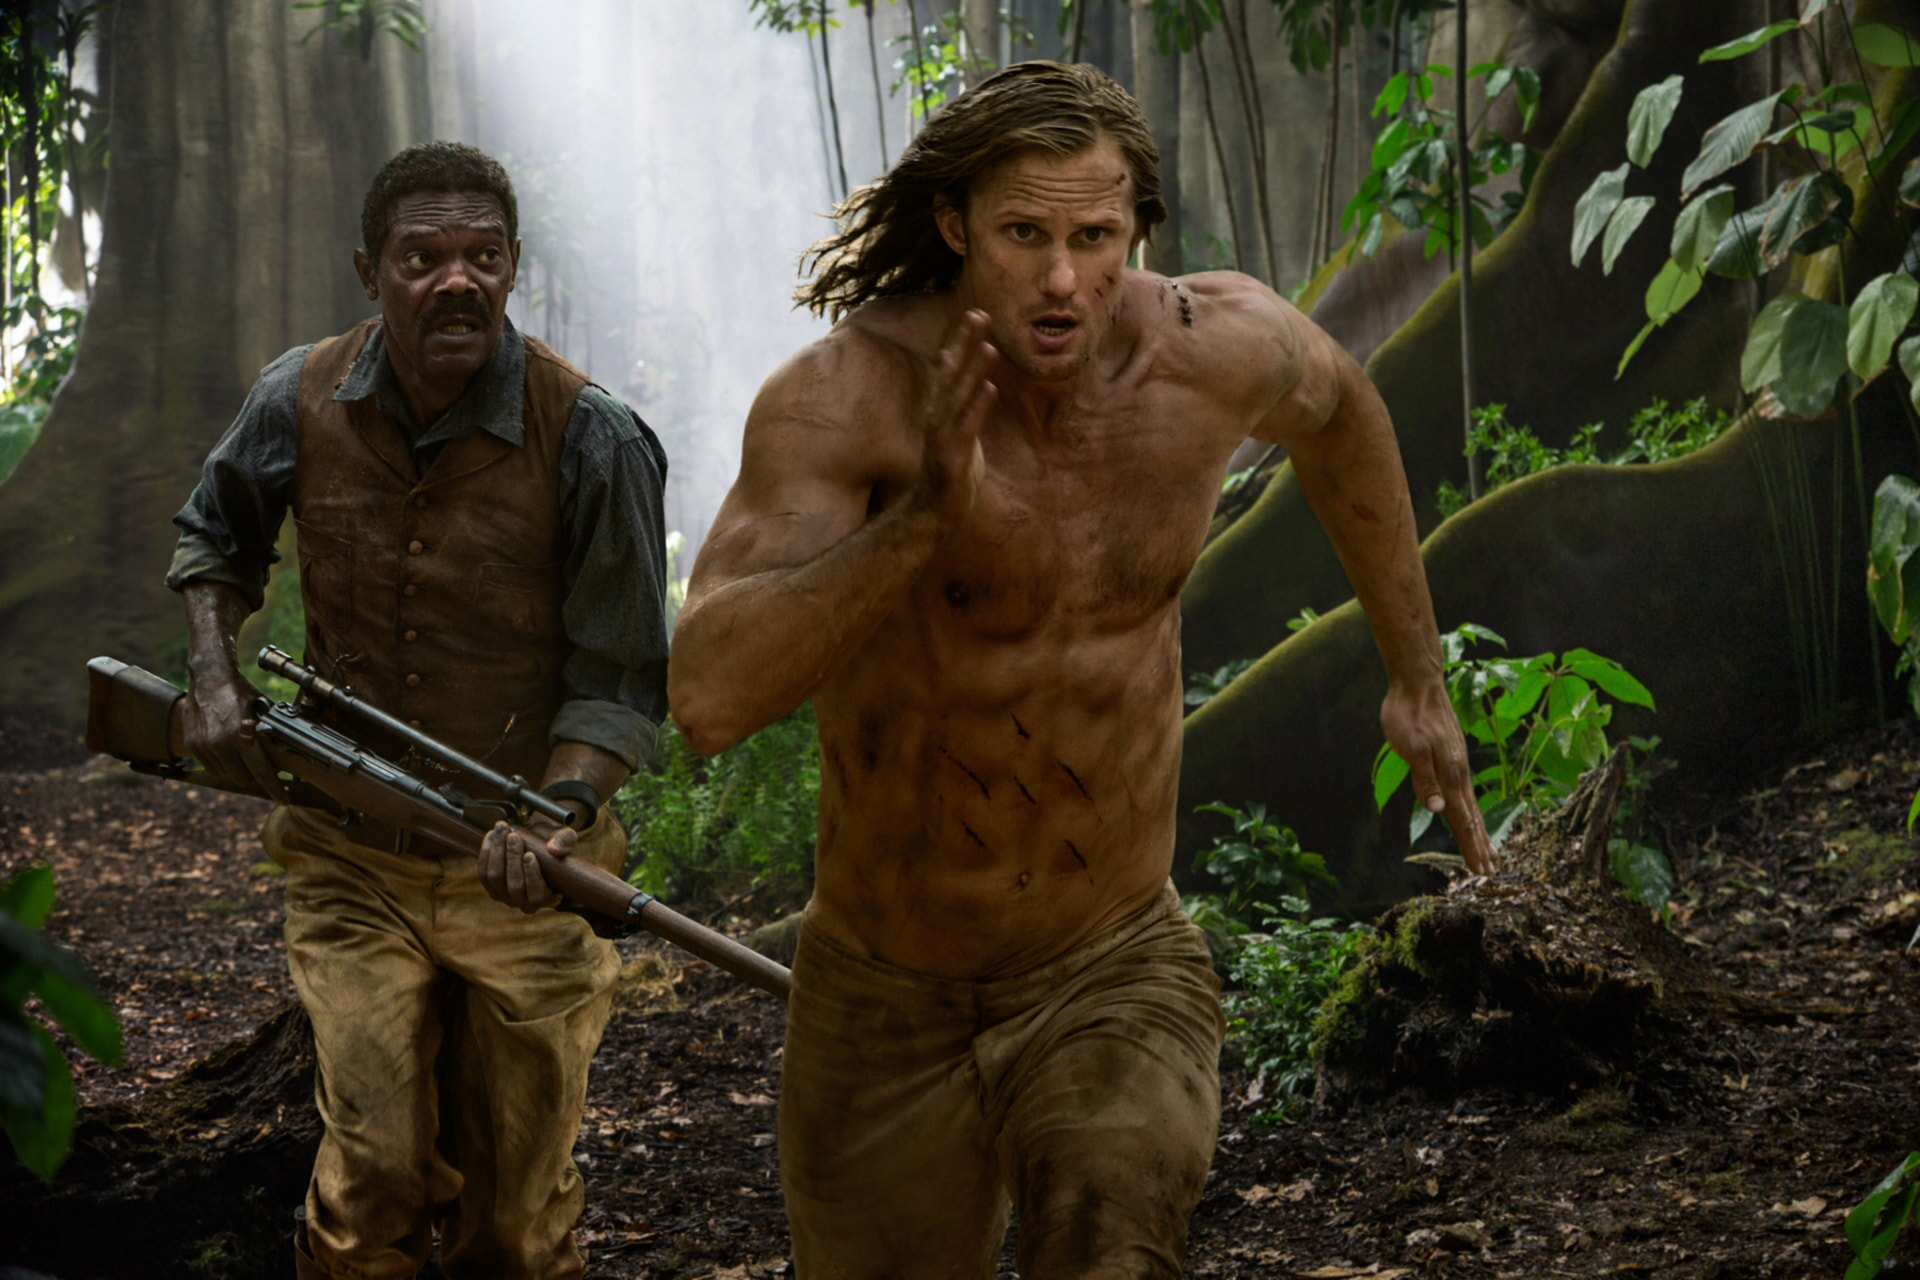 SAMUEL L. JACKSON as George Washington Williams and ALEXANDAR SKARSGÅRD as Tarzan run through the jungle